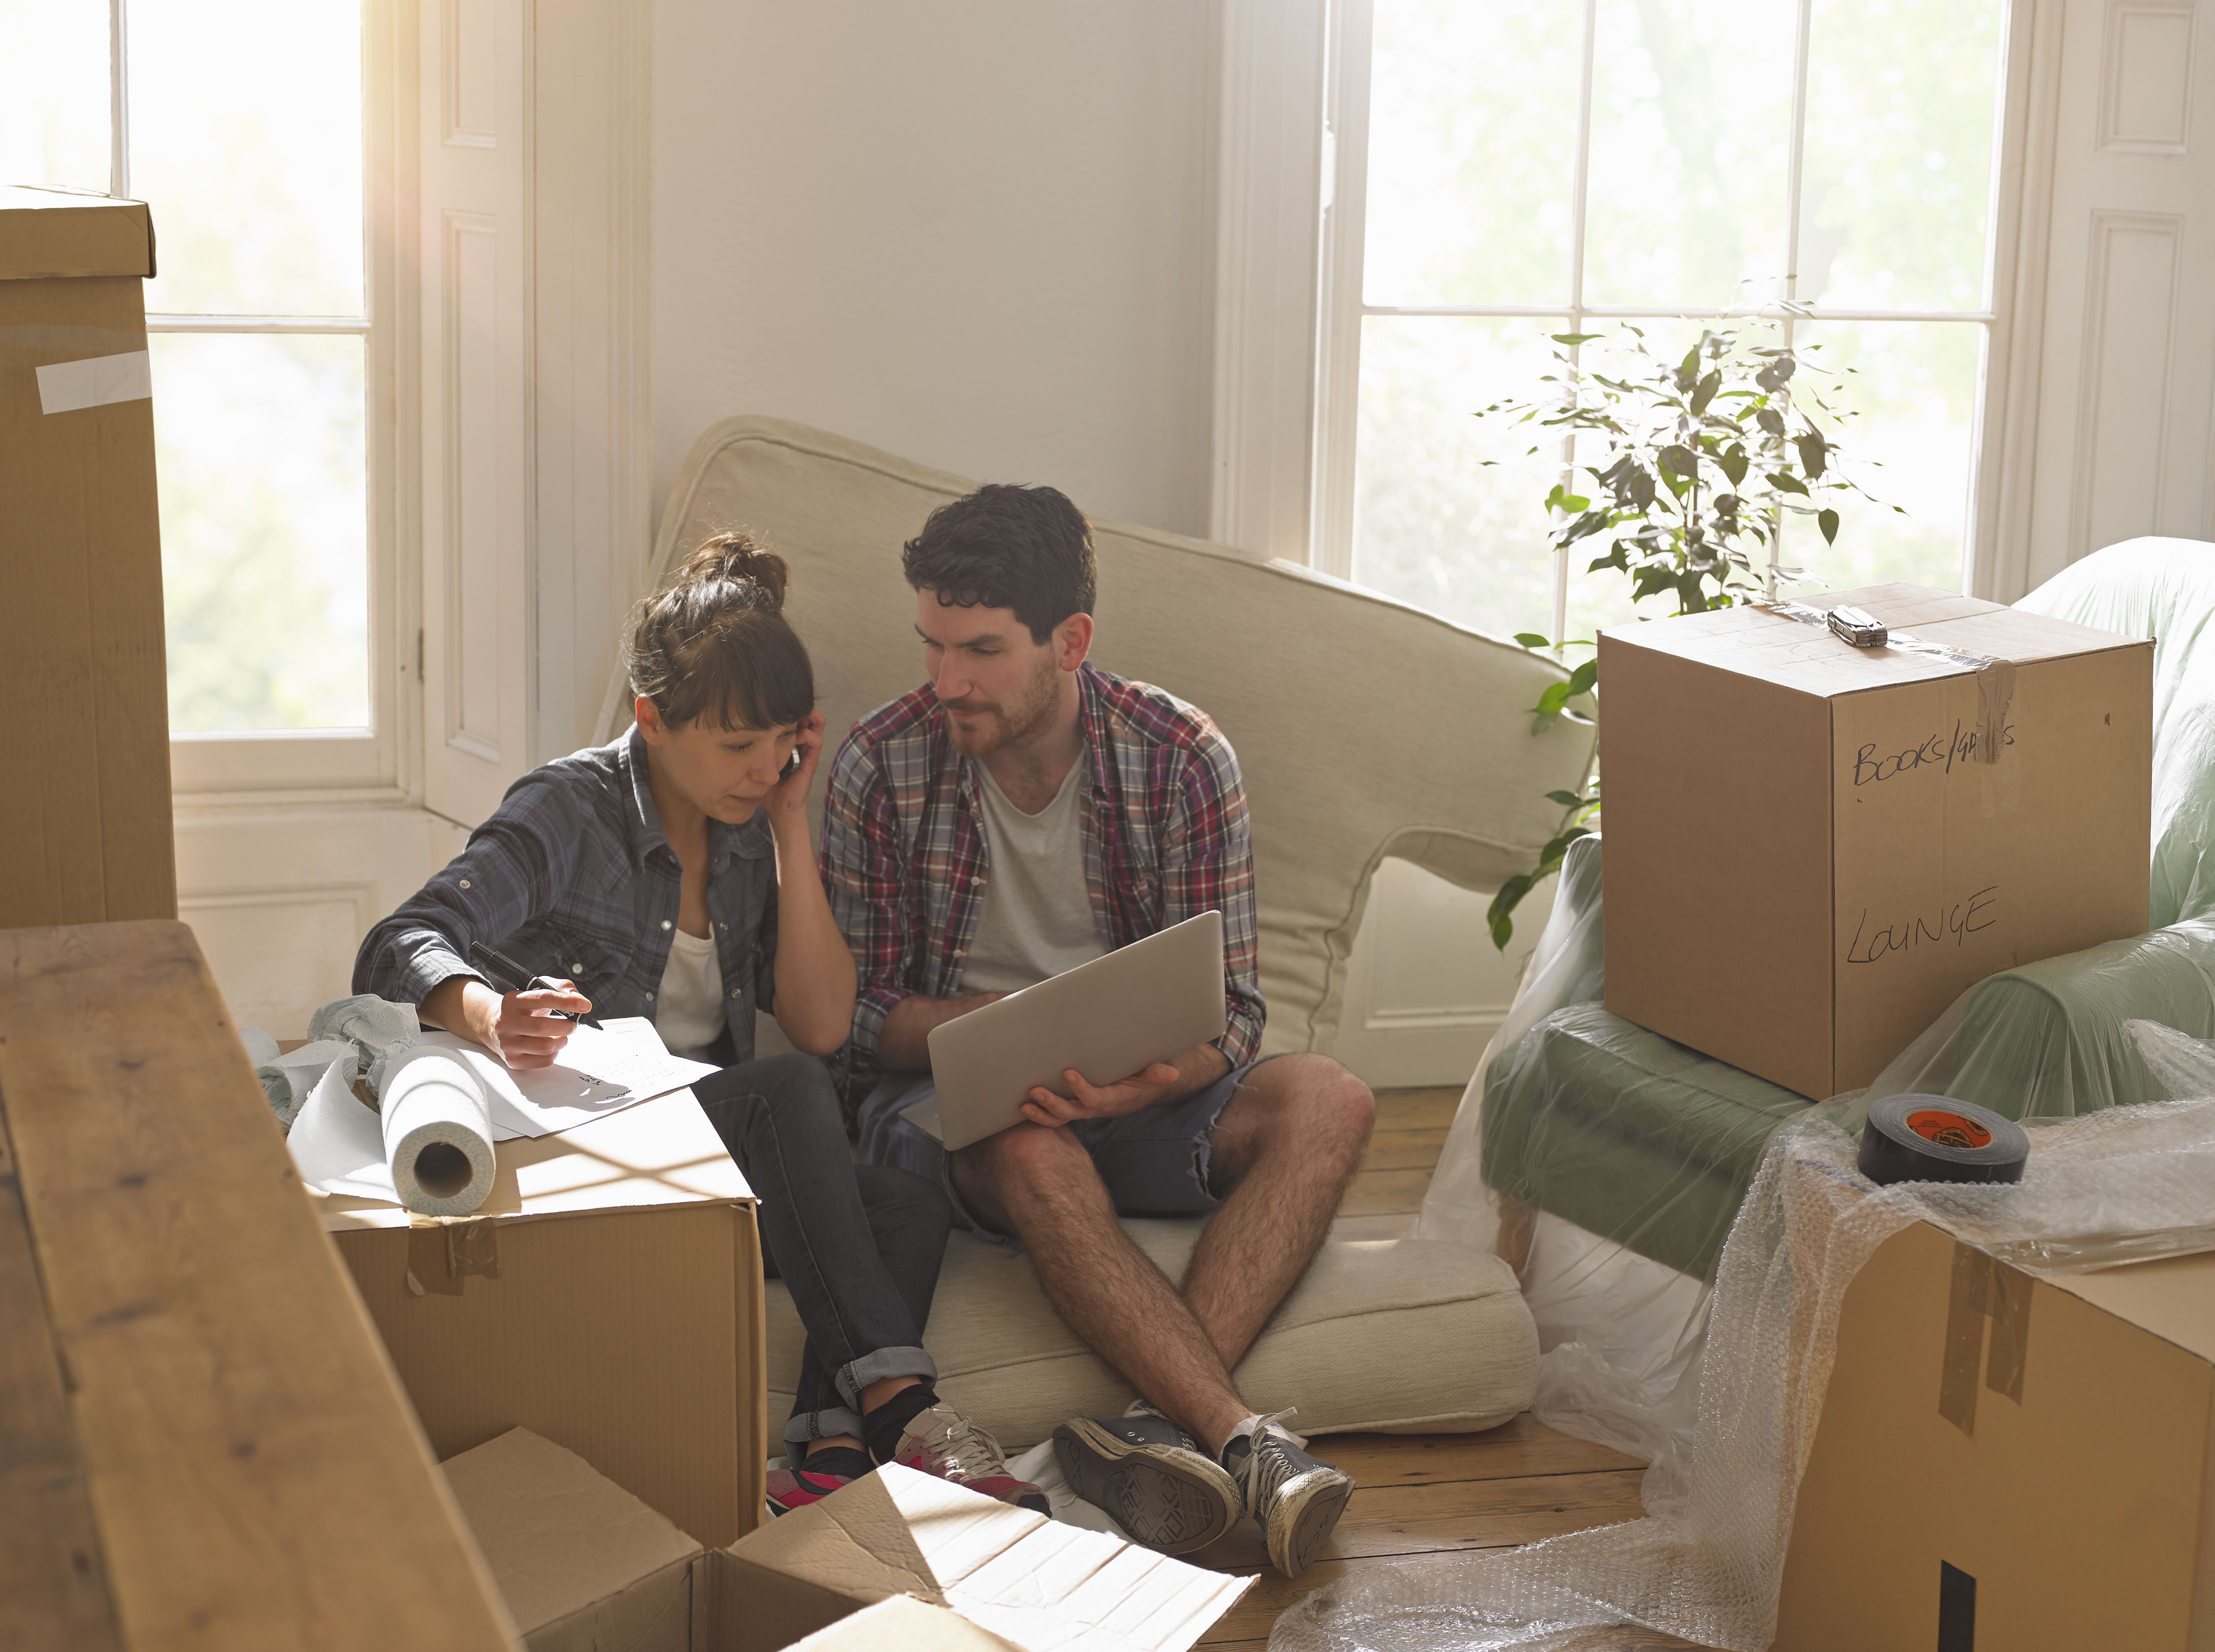 Couple moving into new home working on a laptop